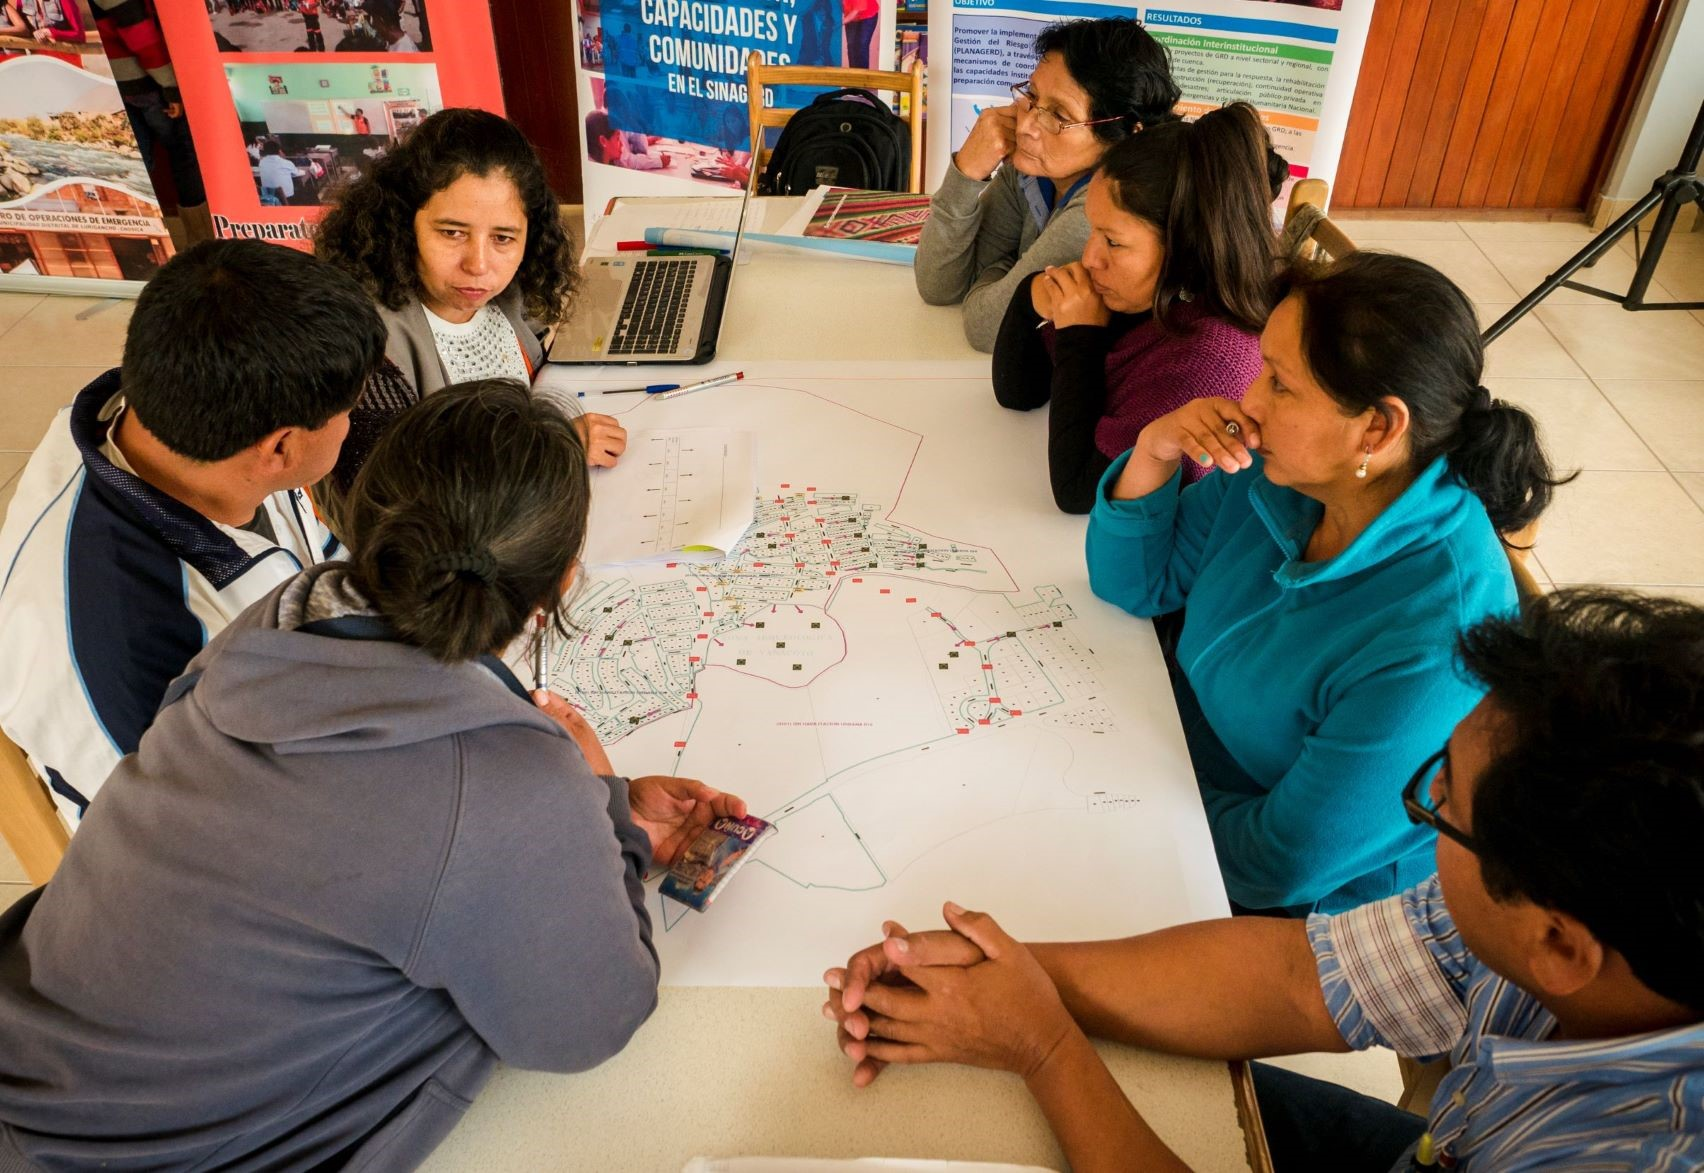 Brenda suggests identifying suitable timings as part of community mapping exercises such as this Participatory Capacity and Vulnerability Analysis session in Lima, Peru. Photo: Practical Action Peru.